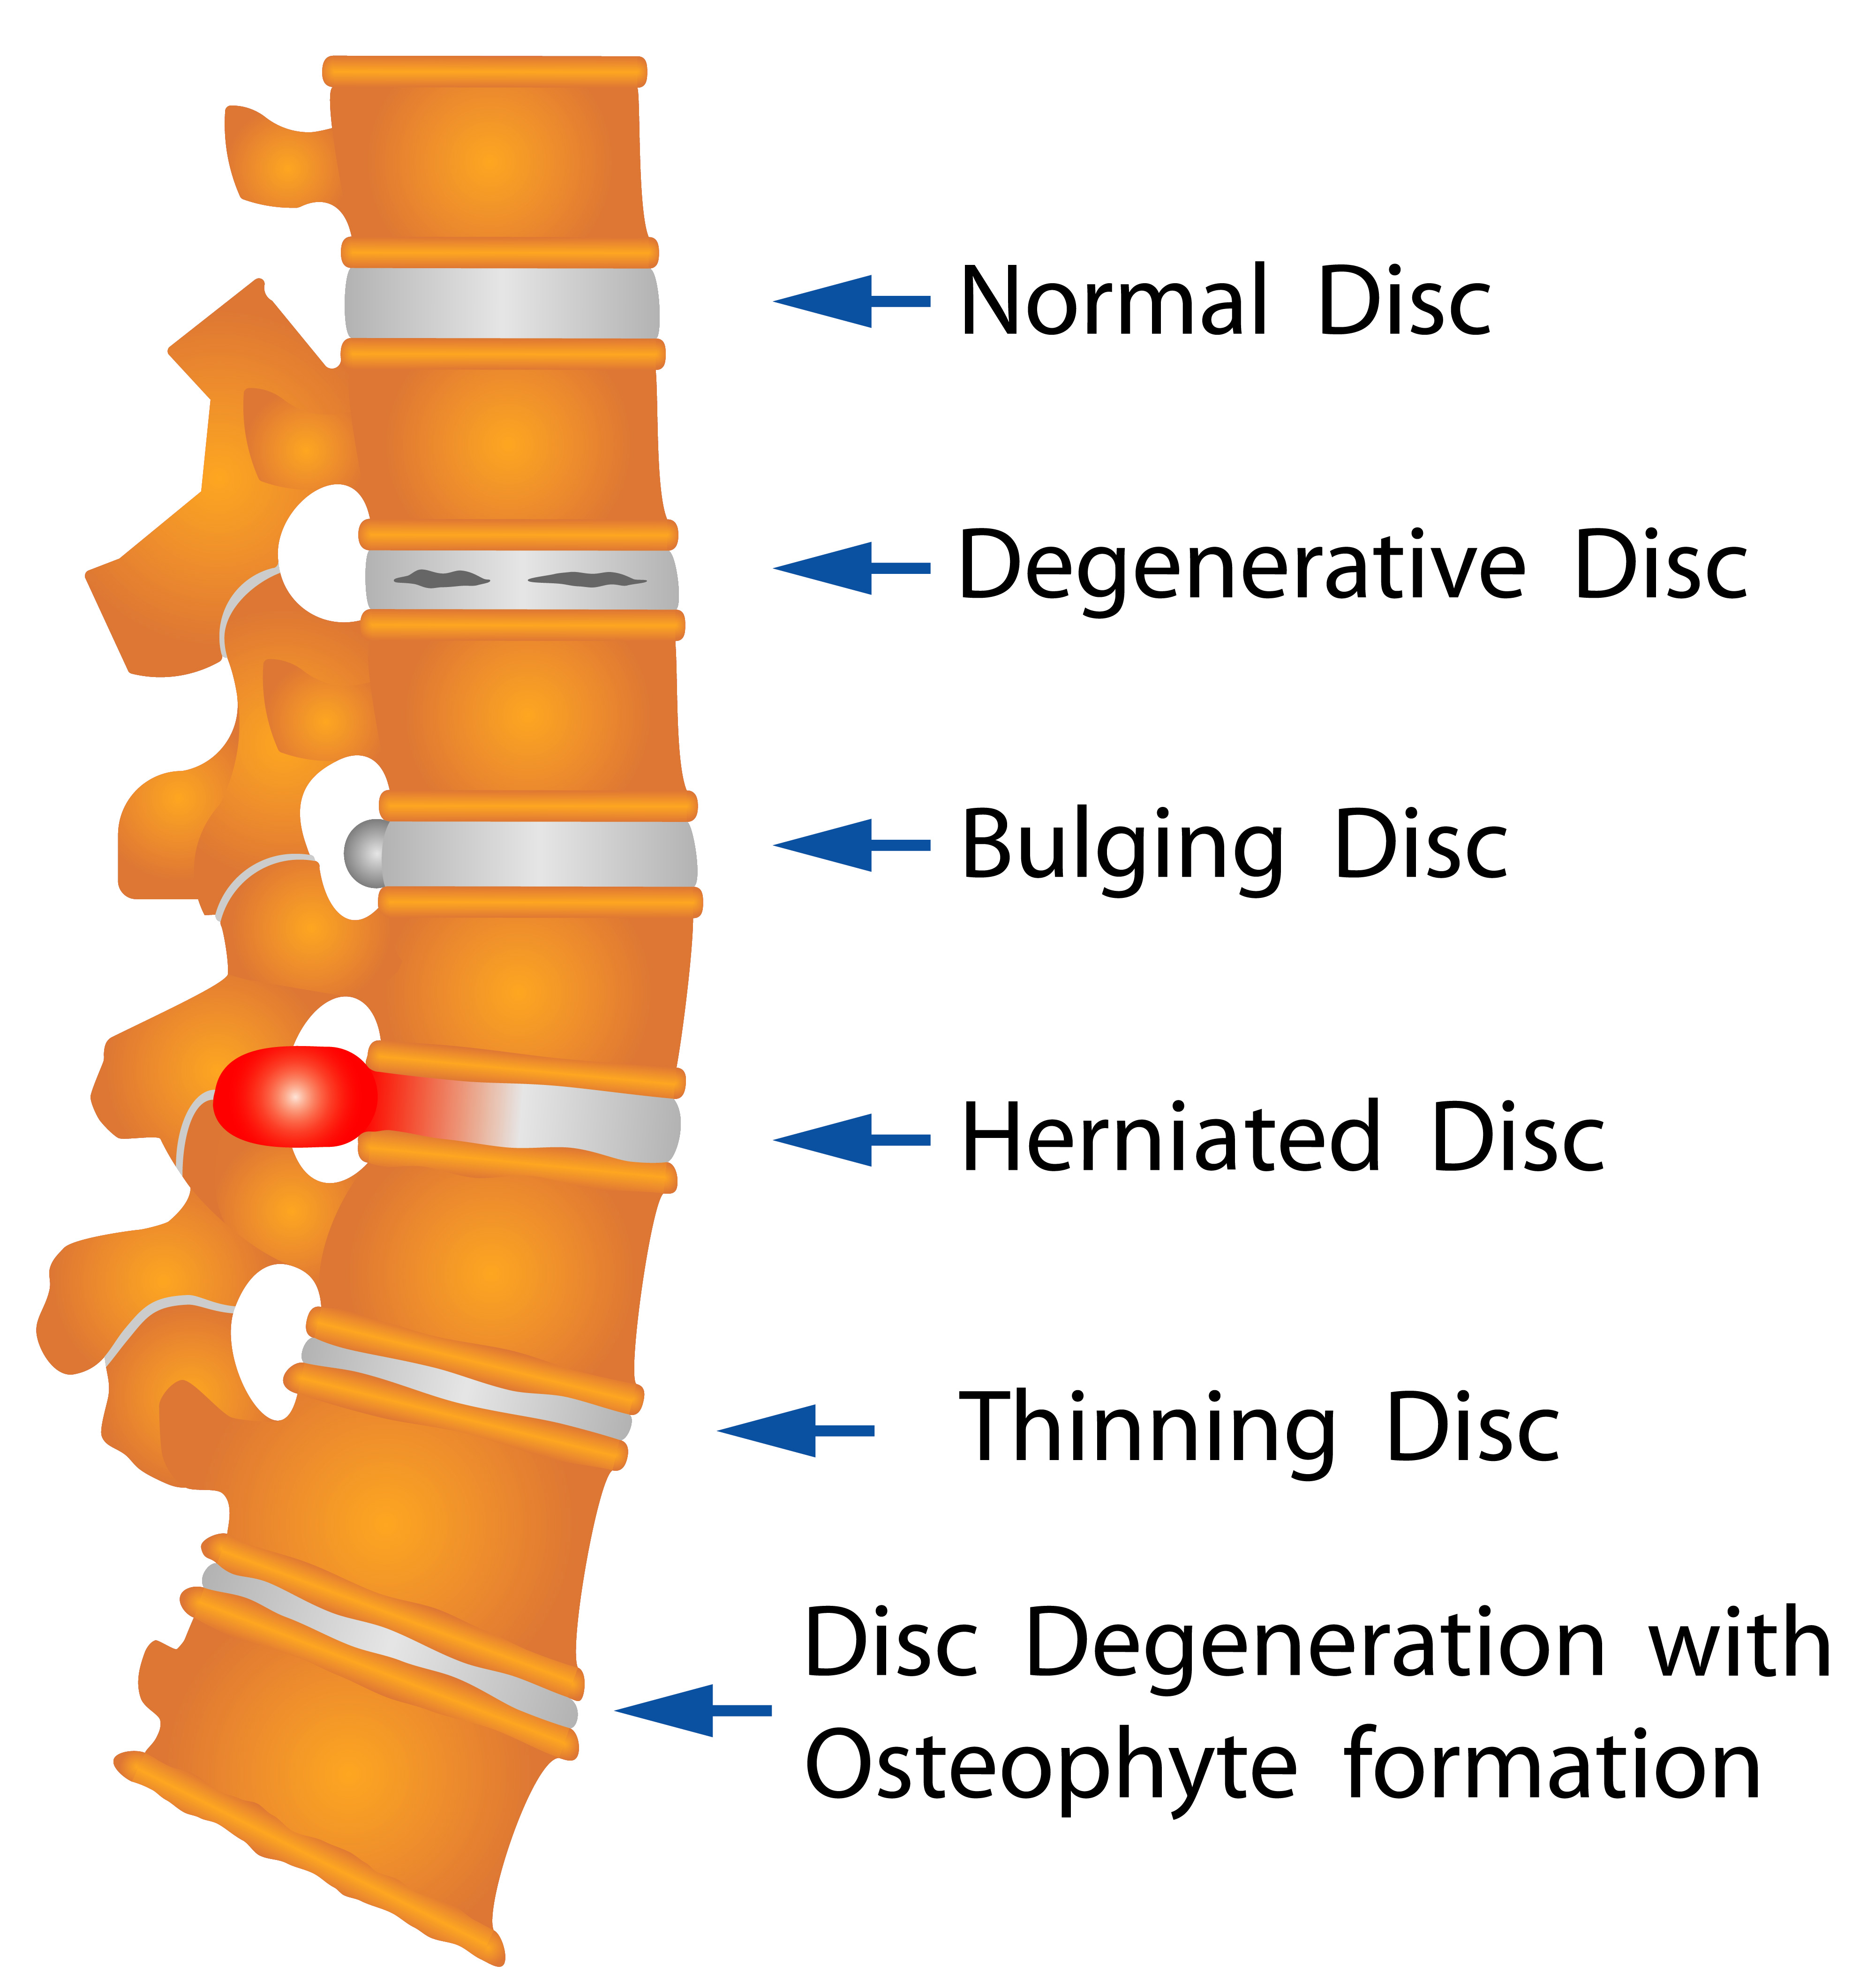 Herniated disc physical therapy - Discs Change As You Age And With Your General Activities When Herniated Or Rupture